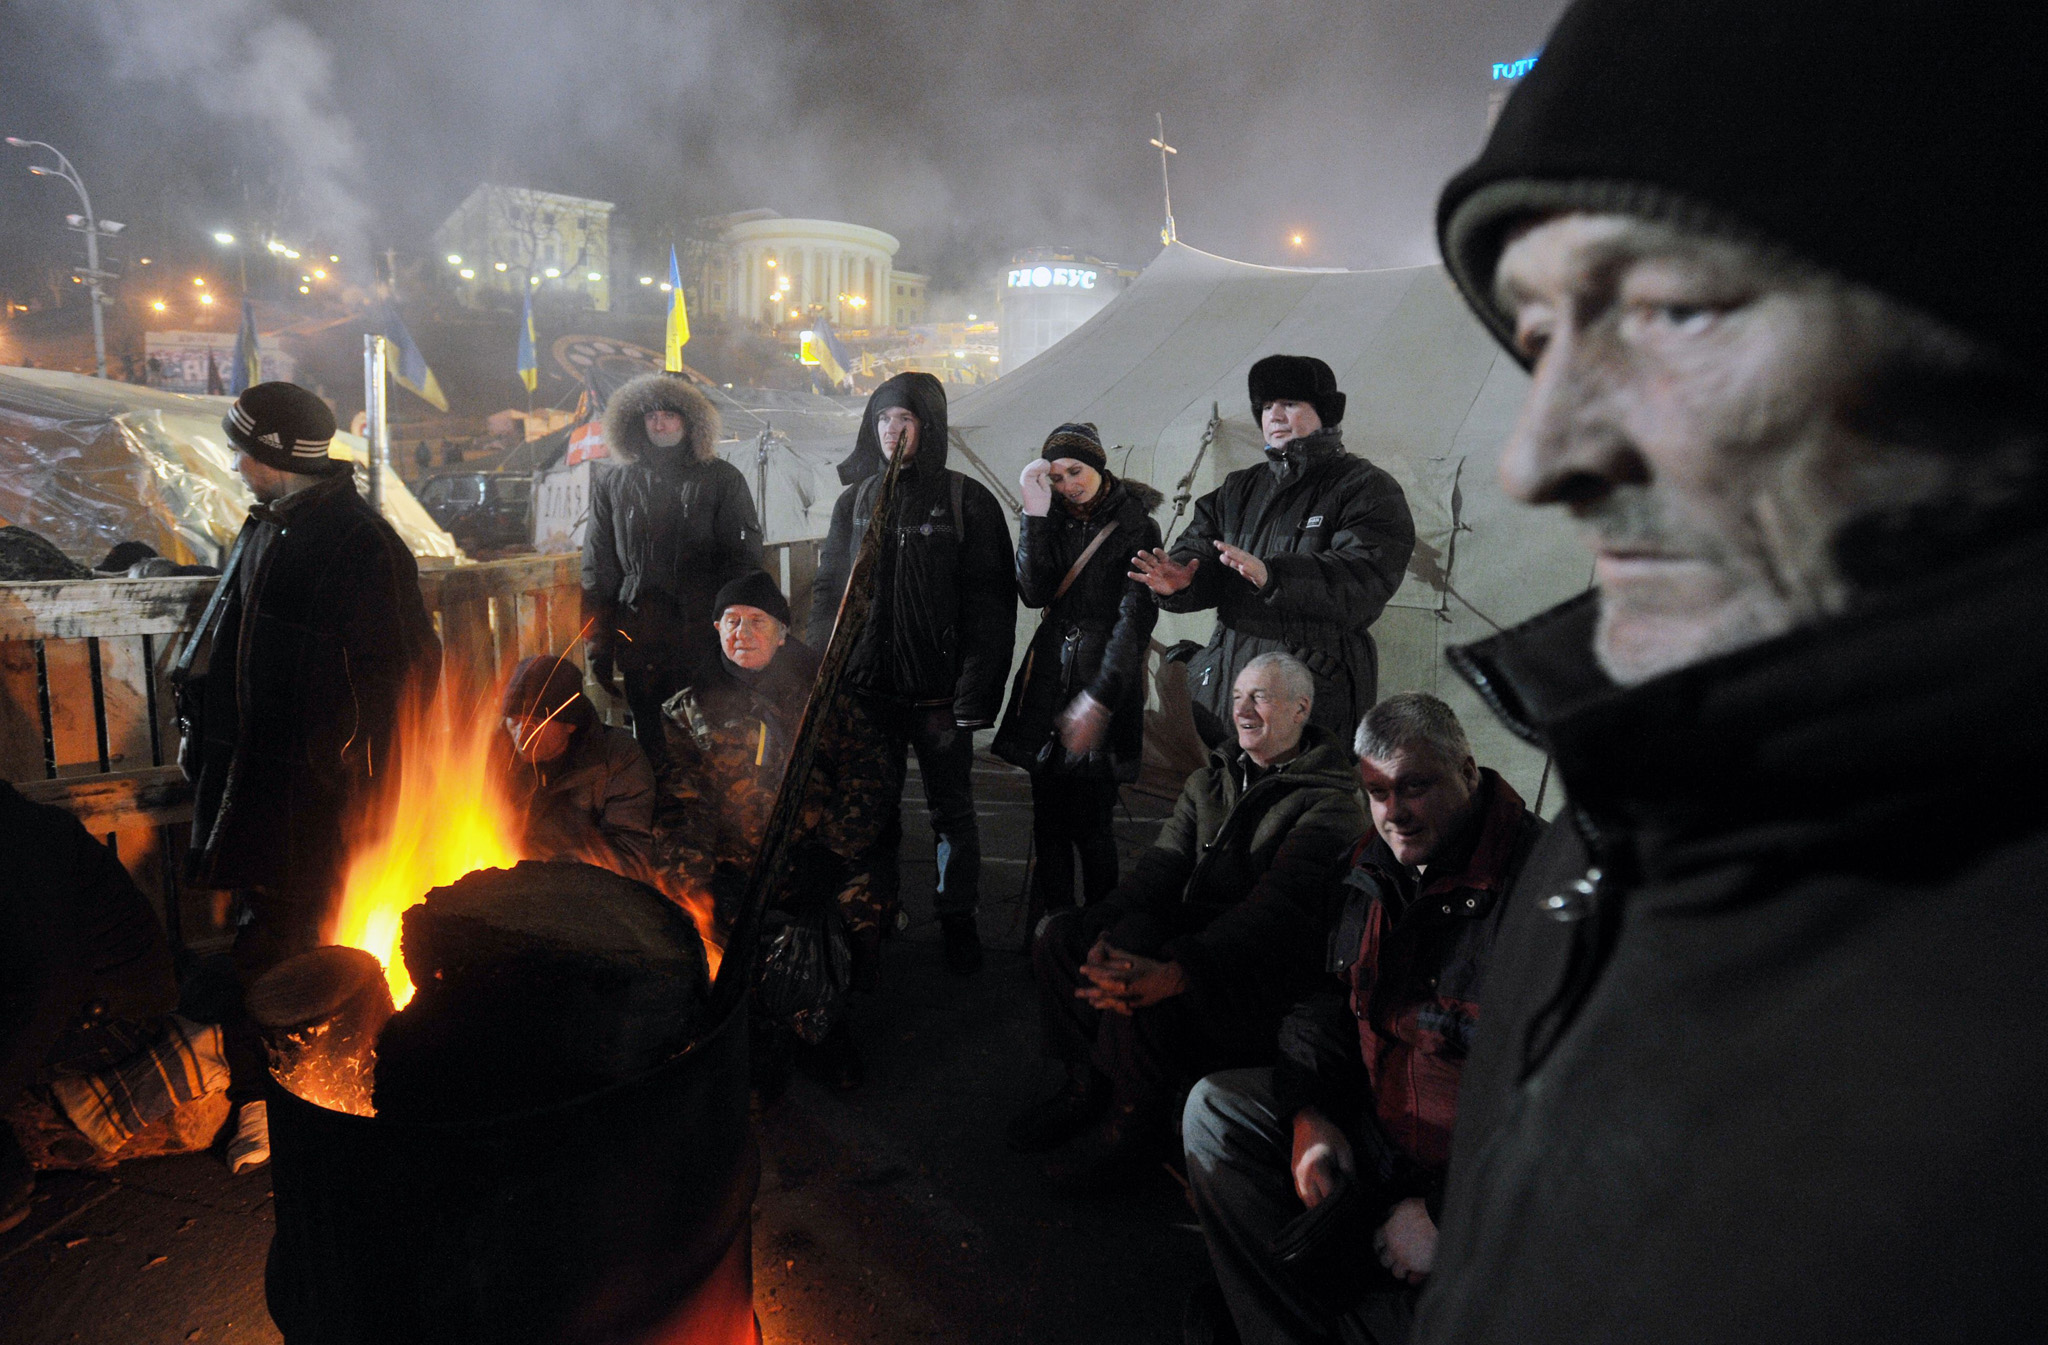 "TOPSHOTS Ukrainian pro-EU protesters kee...TOPSHOTS Ukrainian pro-EU protesters keep warm around a bonfire in Independence Square in Kiev early on January 17, 2014. The European Union and the United States expressed concern after the Ukrainian parliament passed laws to curb the right to protest, a move the opposition called a power grab.  Western rights groups meanwhile denounced the bills as an attempt by President Viktor Yanukovych to impose a ""dictatorship"" and called on him to veto the legislation. AFP PHOTO/GENYA SAVILOVGENYA SAVILOV/AFP/Getty Images"